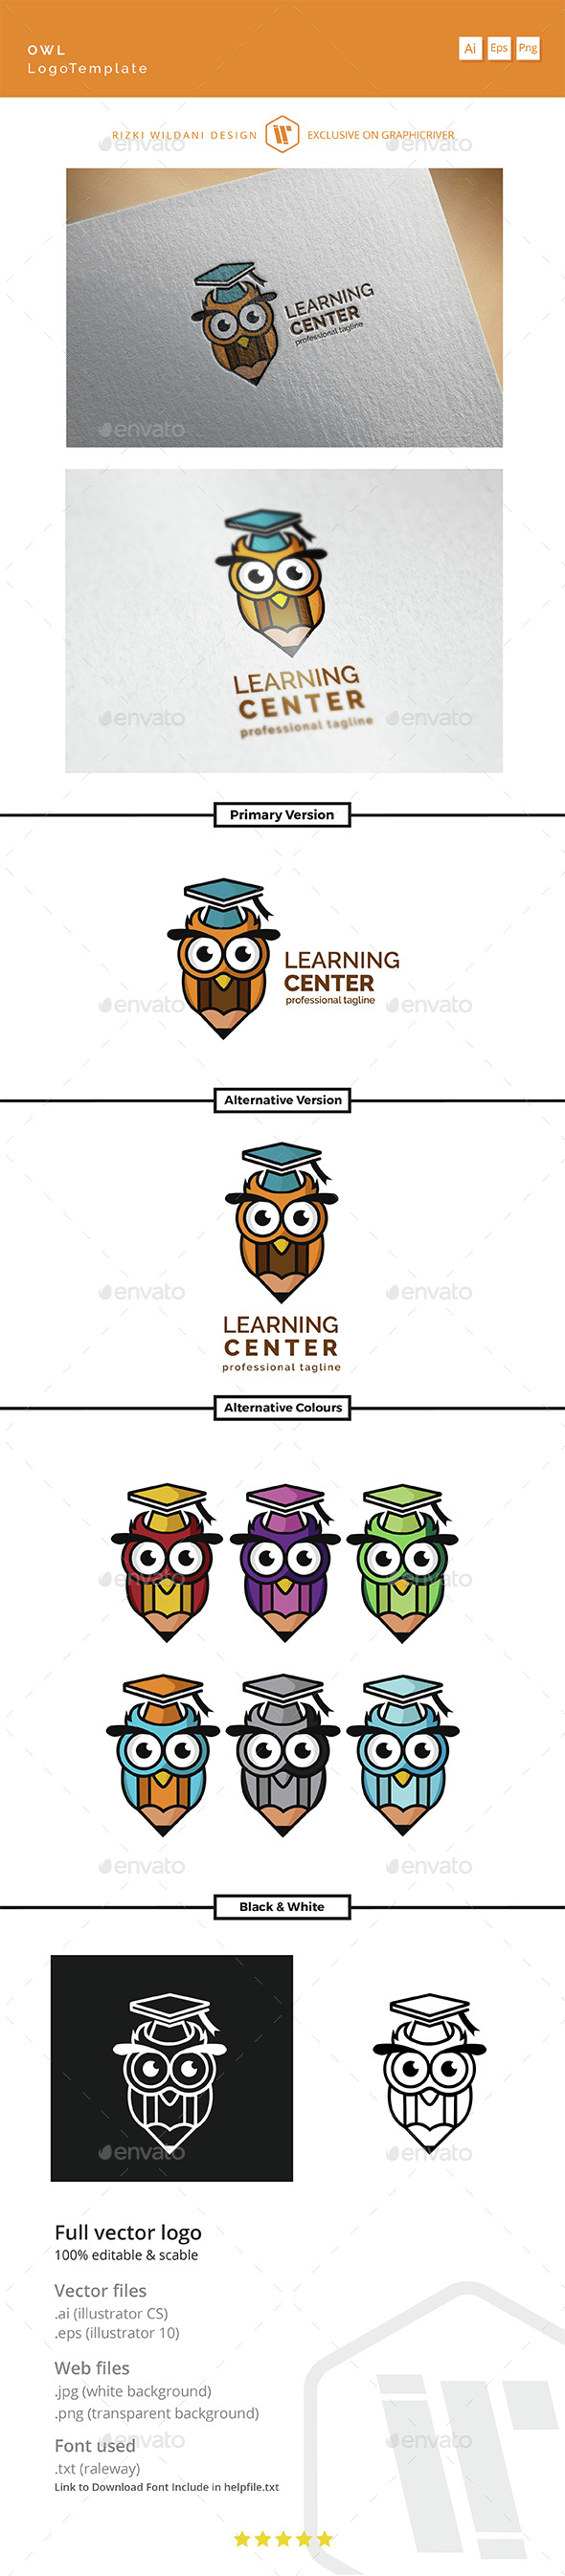 Learning Center - Logo Owl Template - Vector Abstract